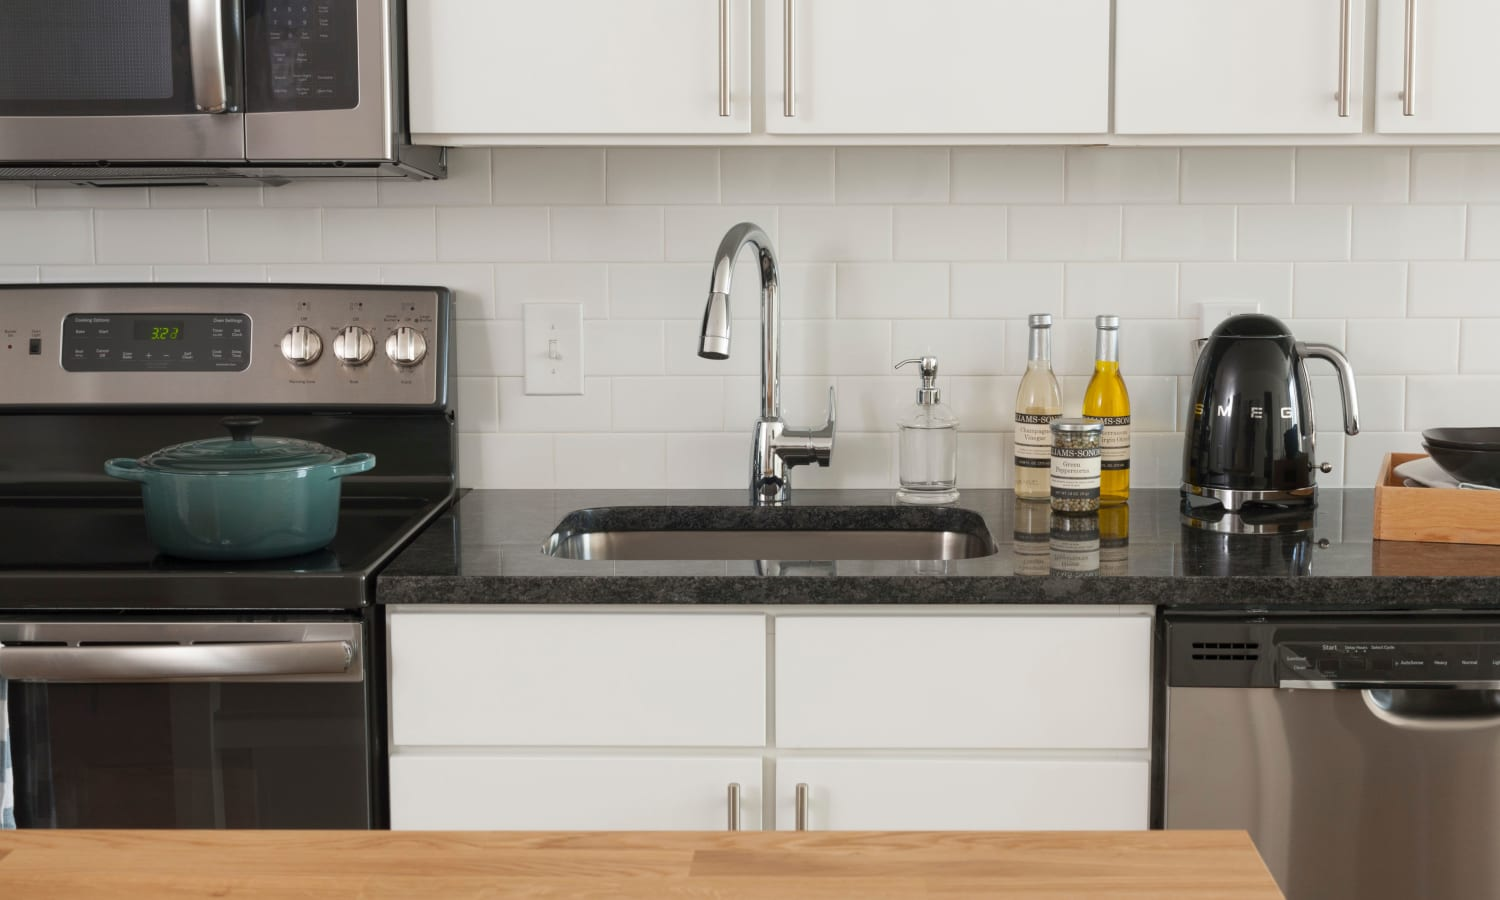 Granite countertops and subway tile backsplash in a model home's kitchen at The Bixby in Washington, District of Columbia